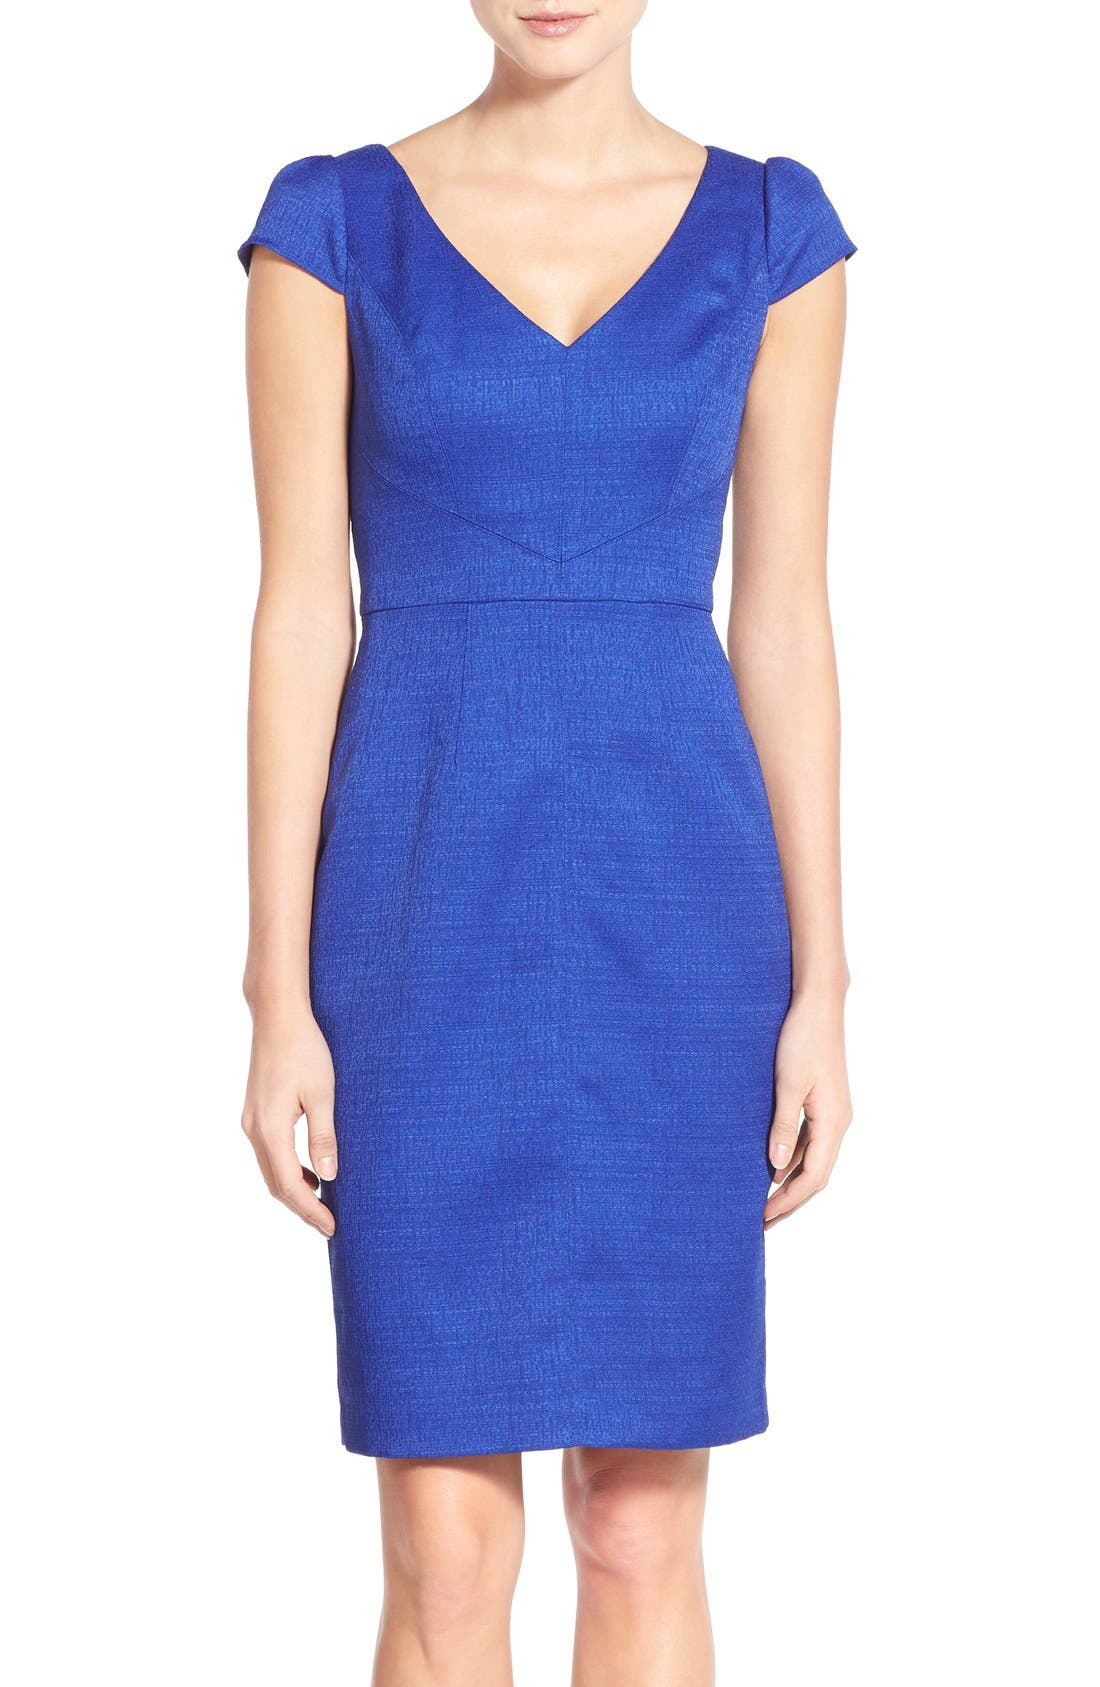 Alternate Image 1 Selected - Adrianna Papell Cap Sleeve Jacquard Sheath Dress